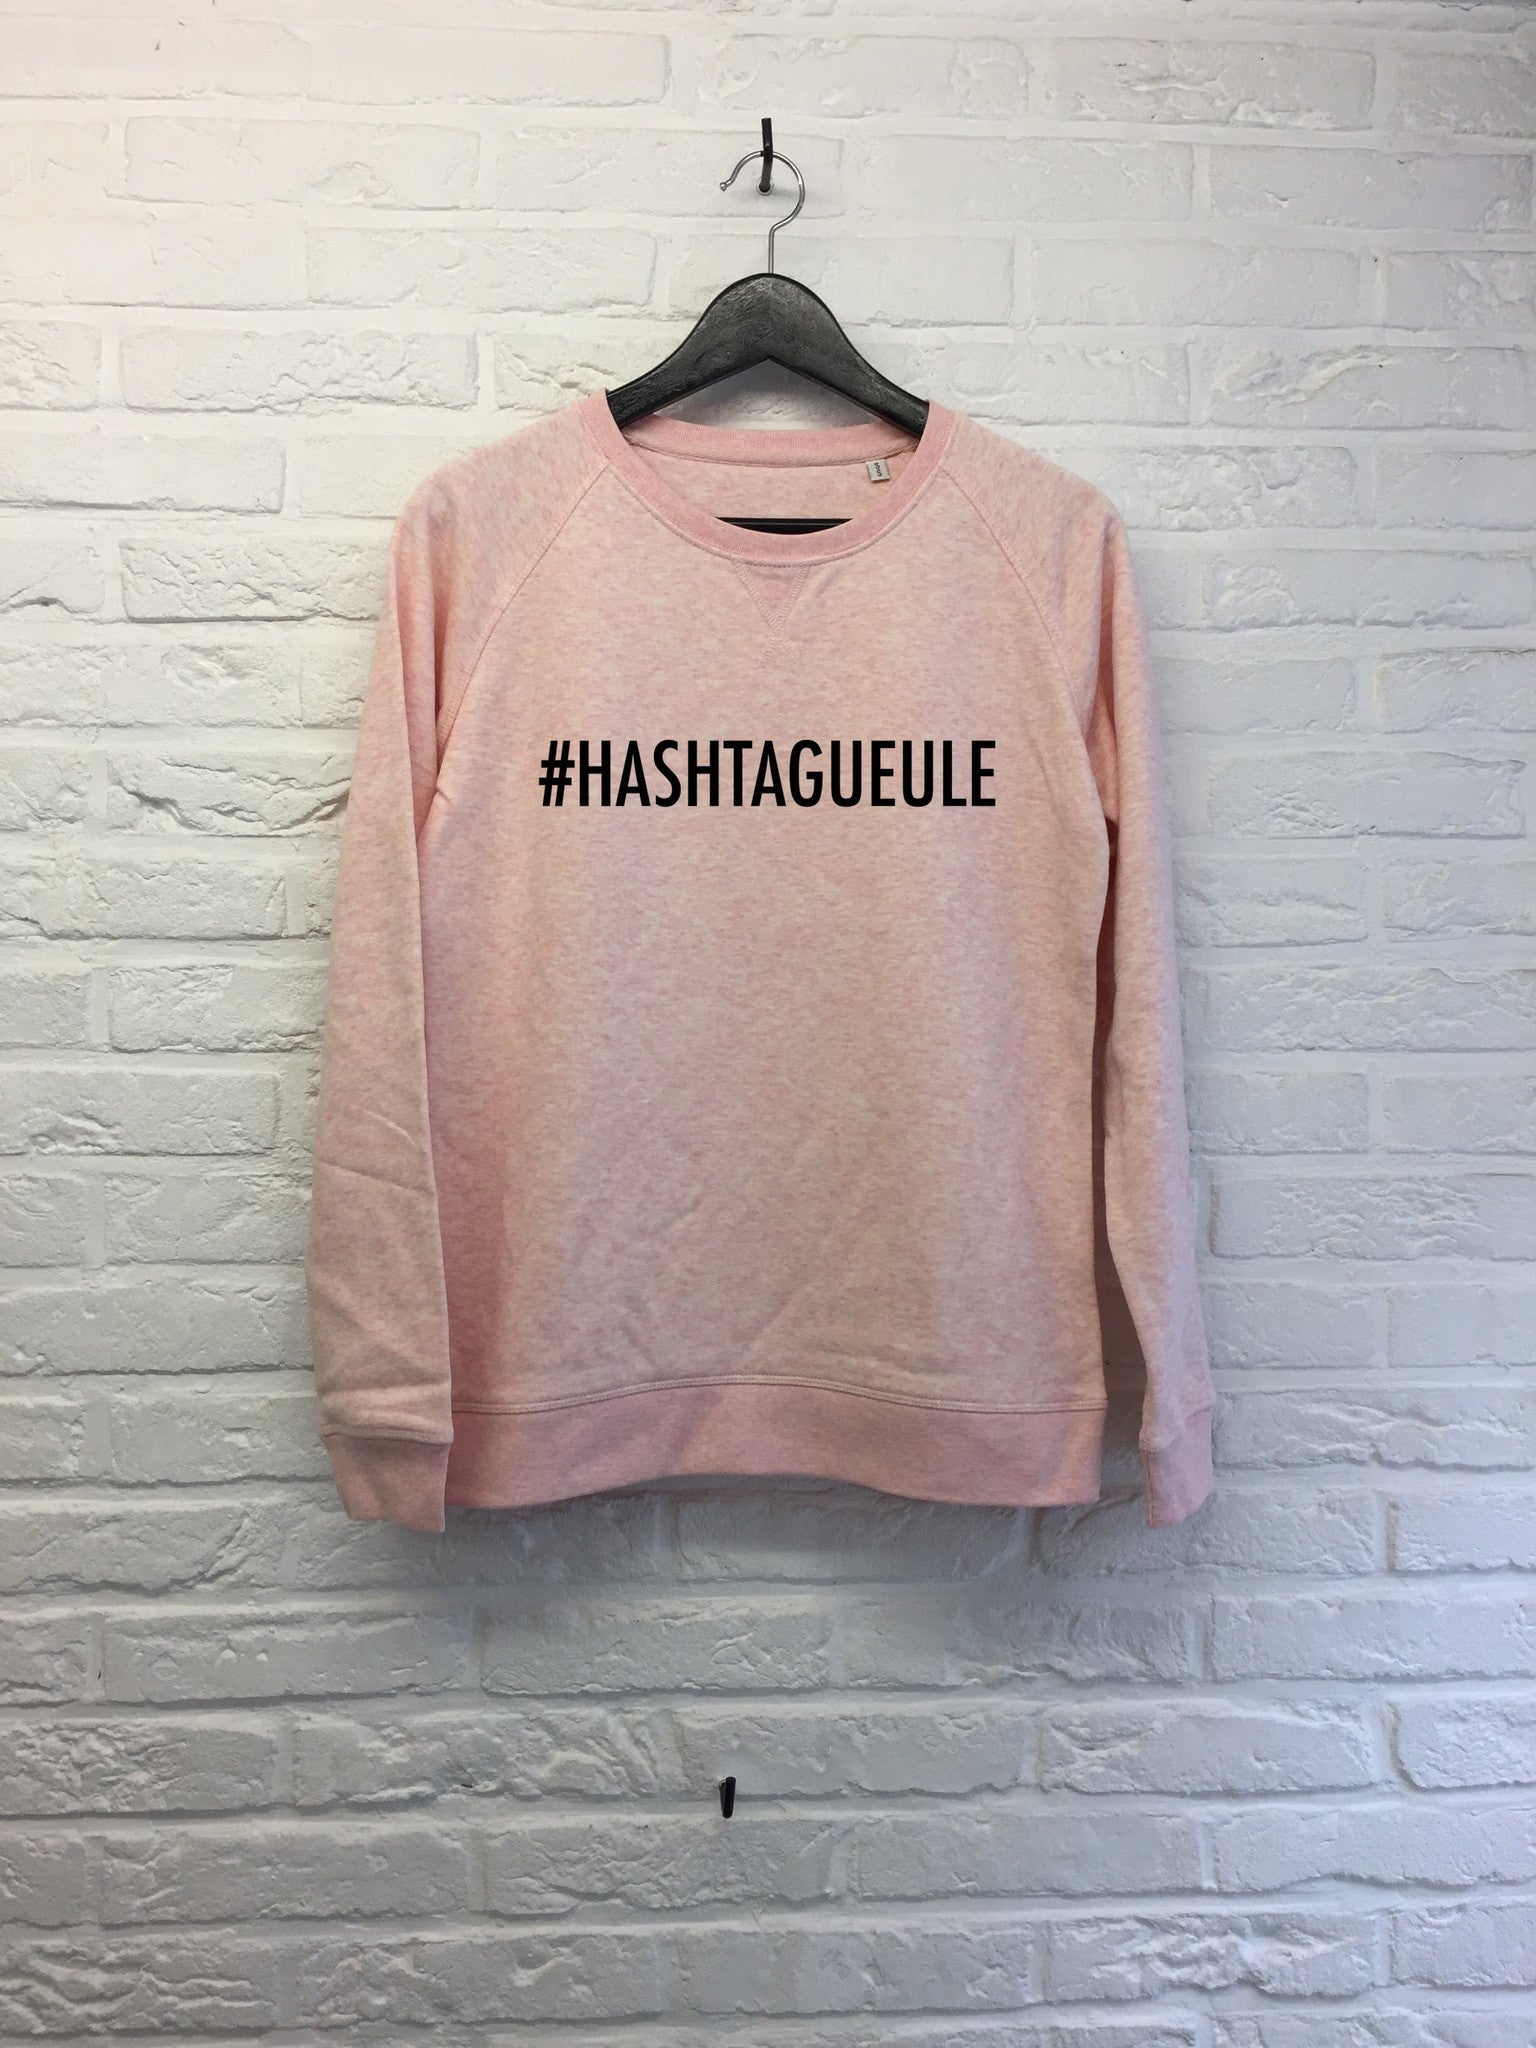 Hashtagueule - Sweat - Femme-Sweat shirts-Atelier Amelot